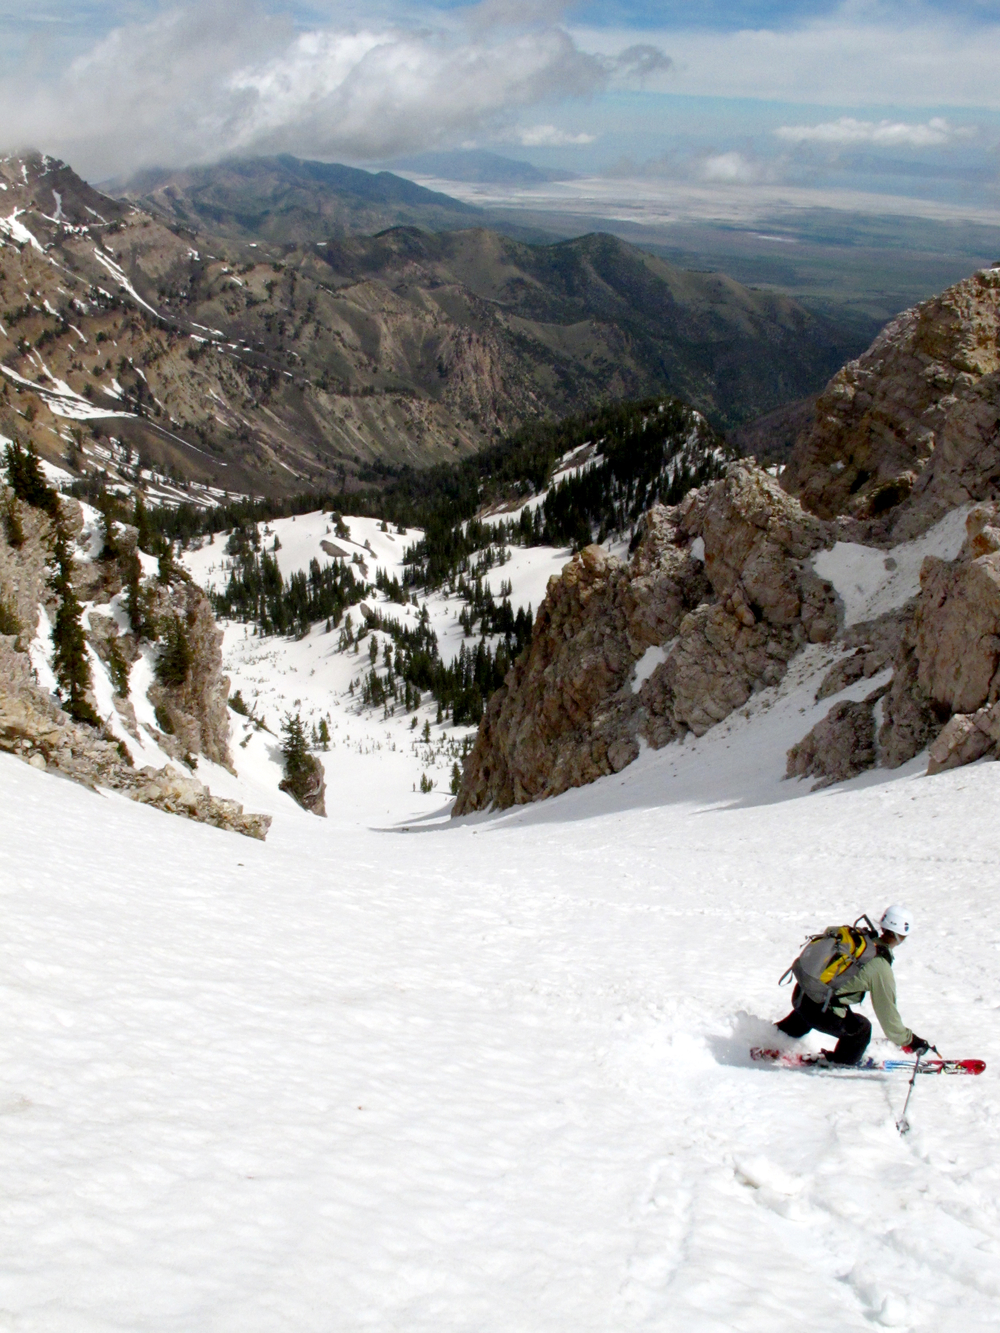 Heather, co-owner of Powderhound Marketing skis the Twin Couloirs of Deseret Peak in Utah's West Desert.